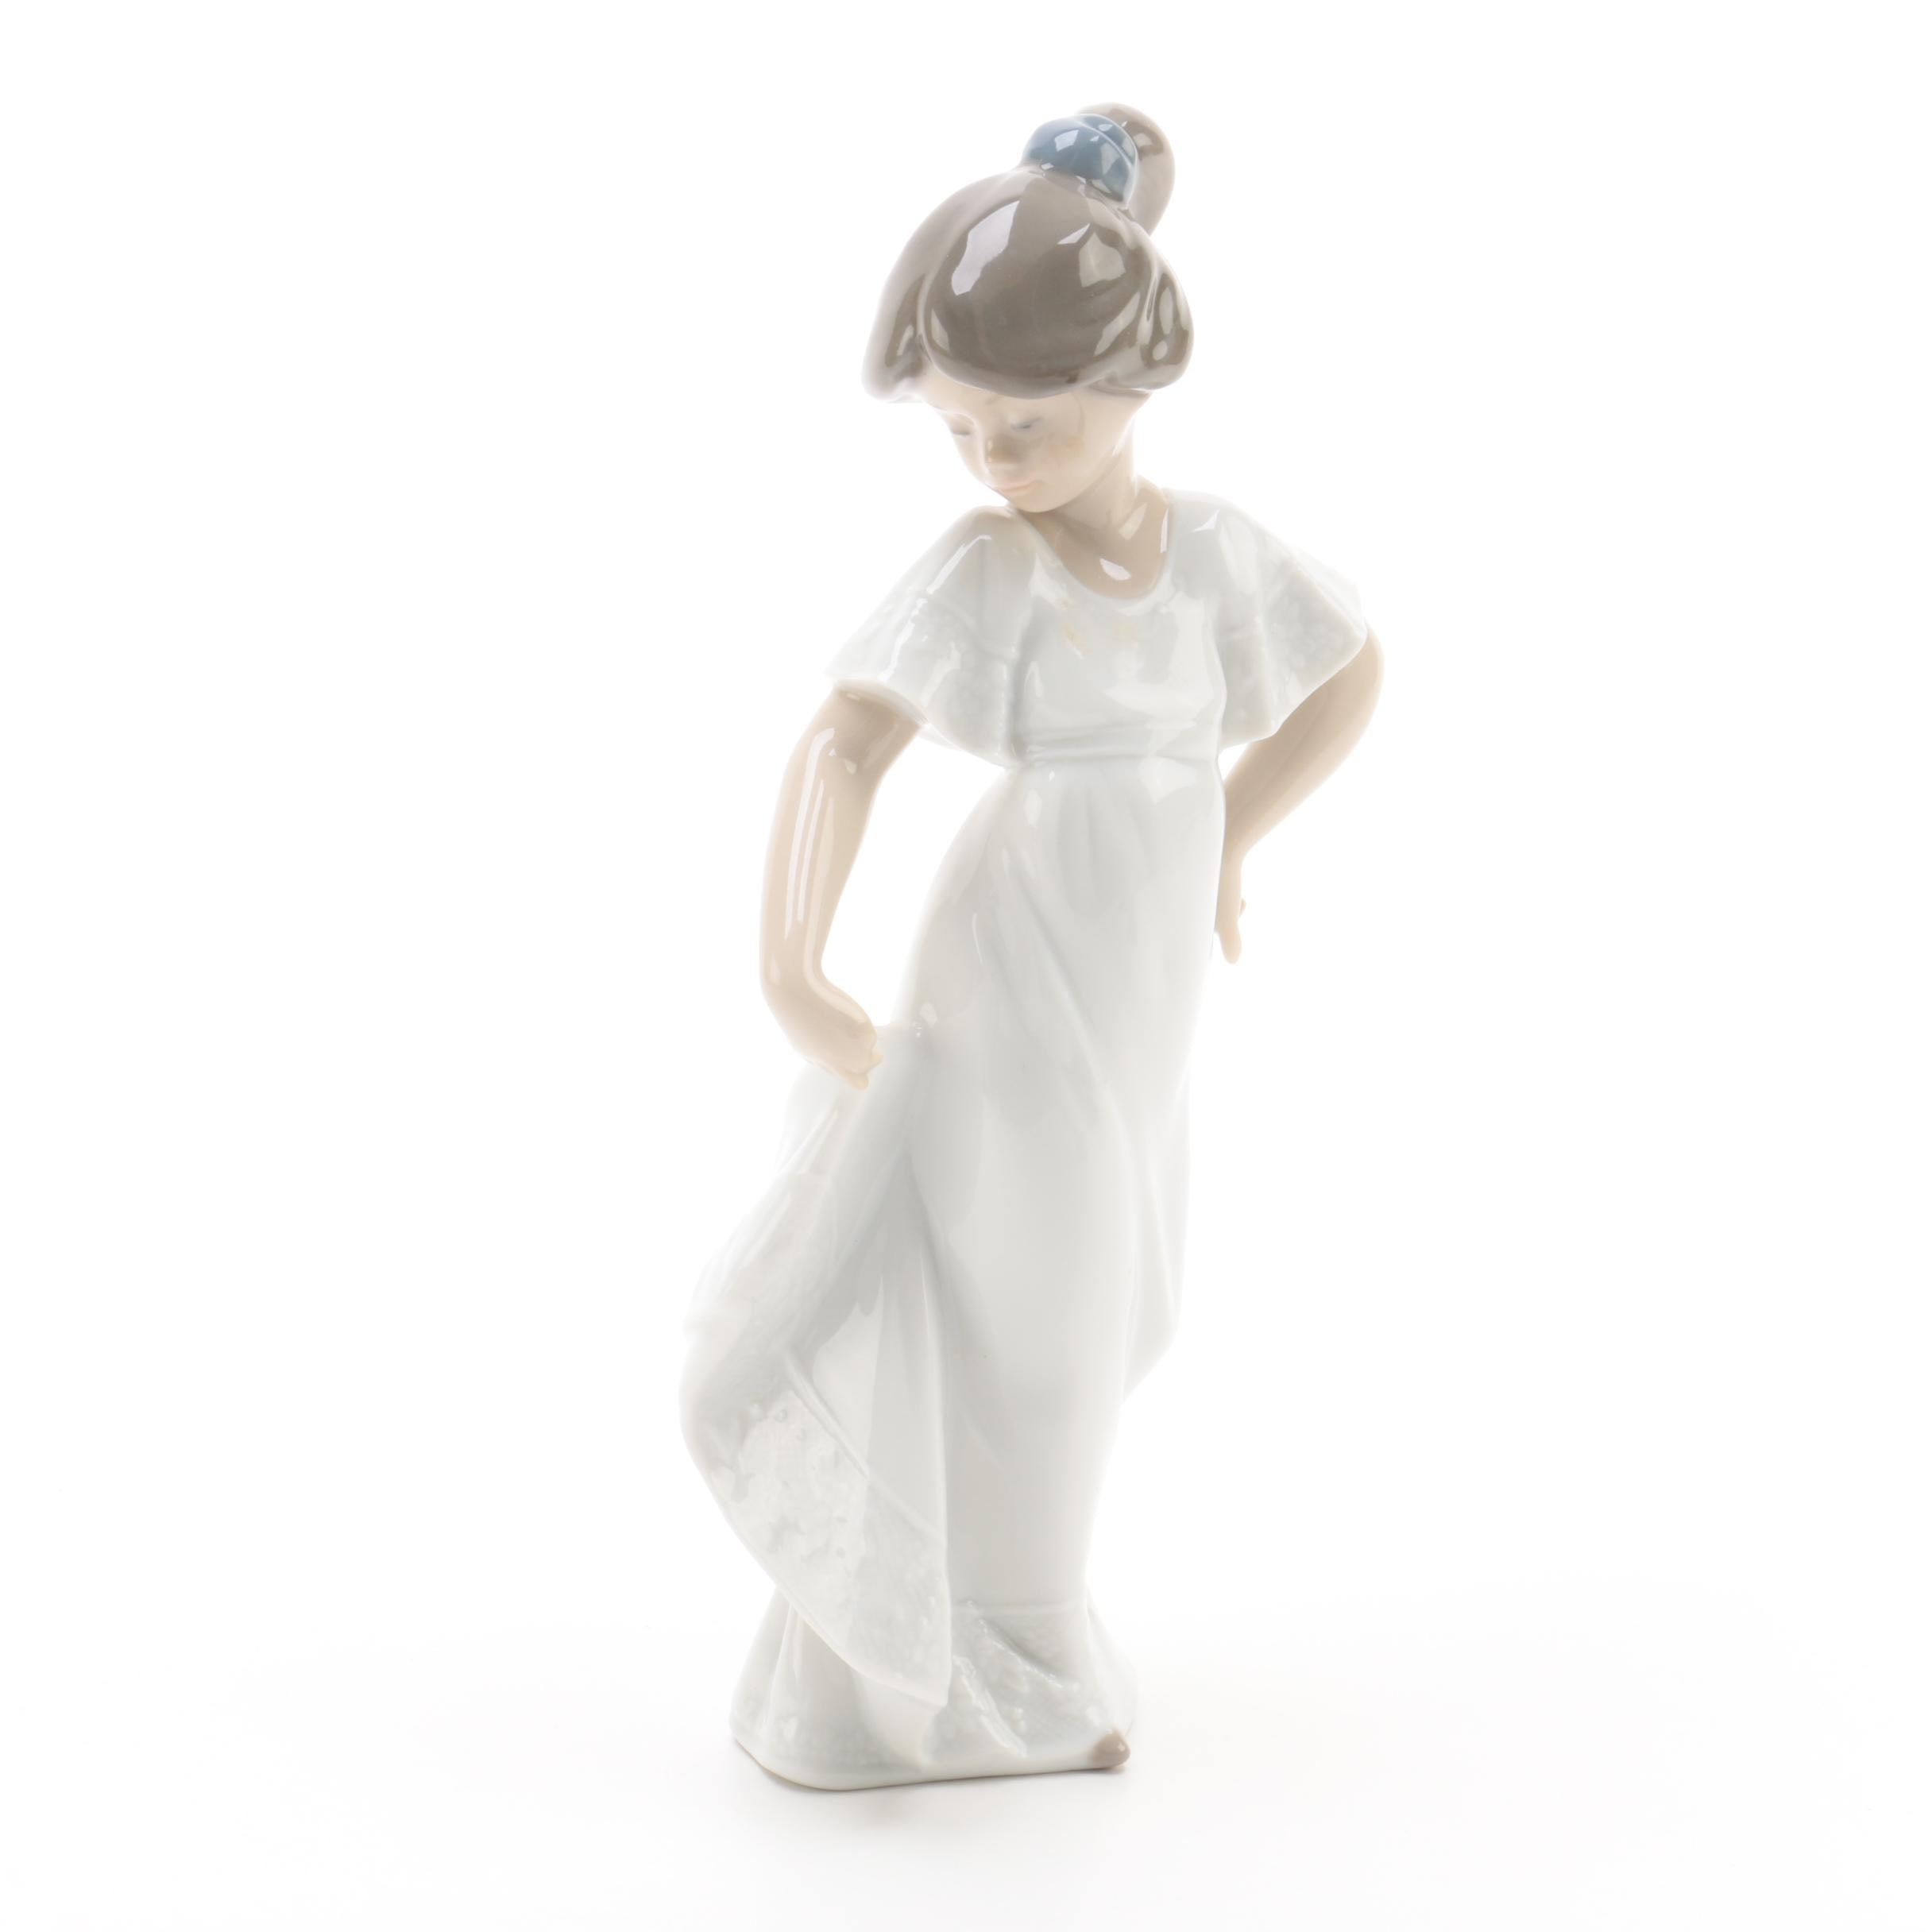 Lladró Porcelain Figurine of Girl in White Dress